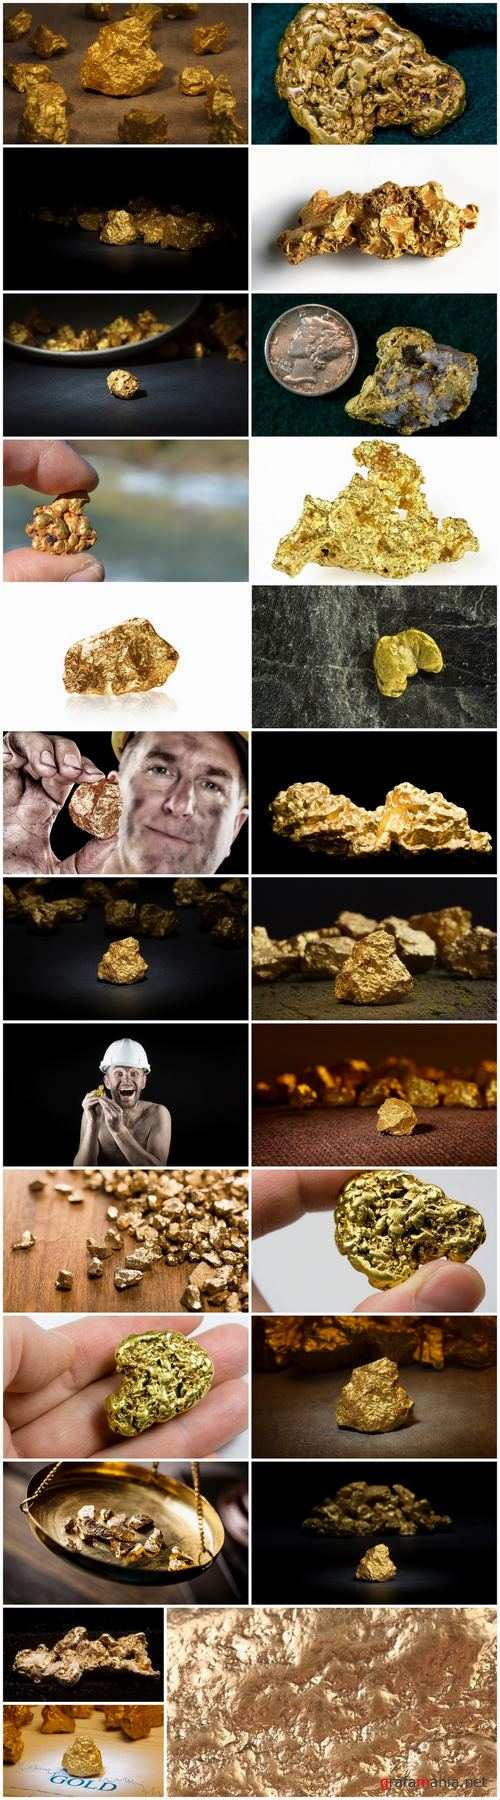 Gold nugget gemstone metal 25 HQ Jpeg